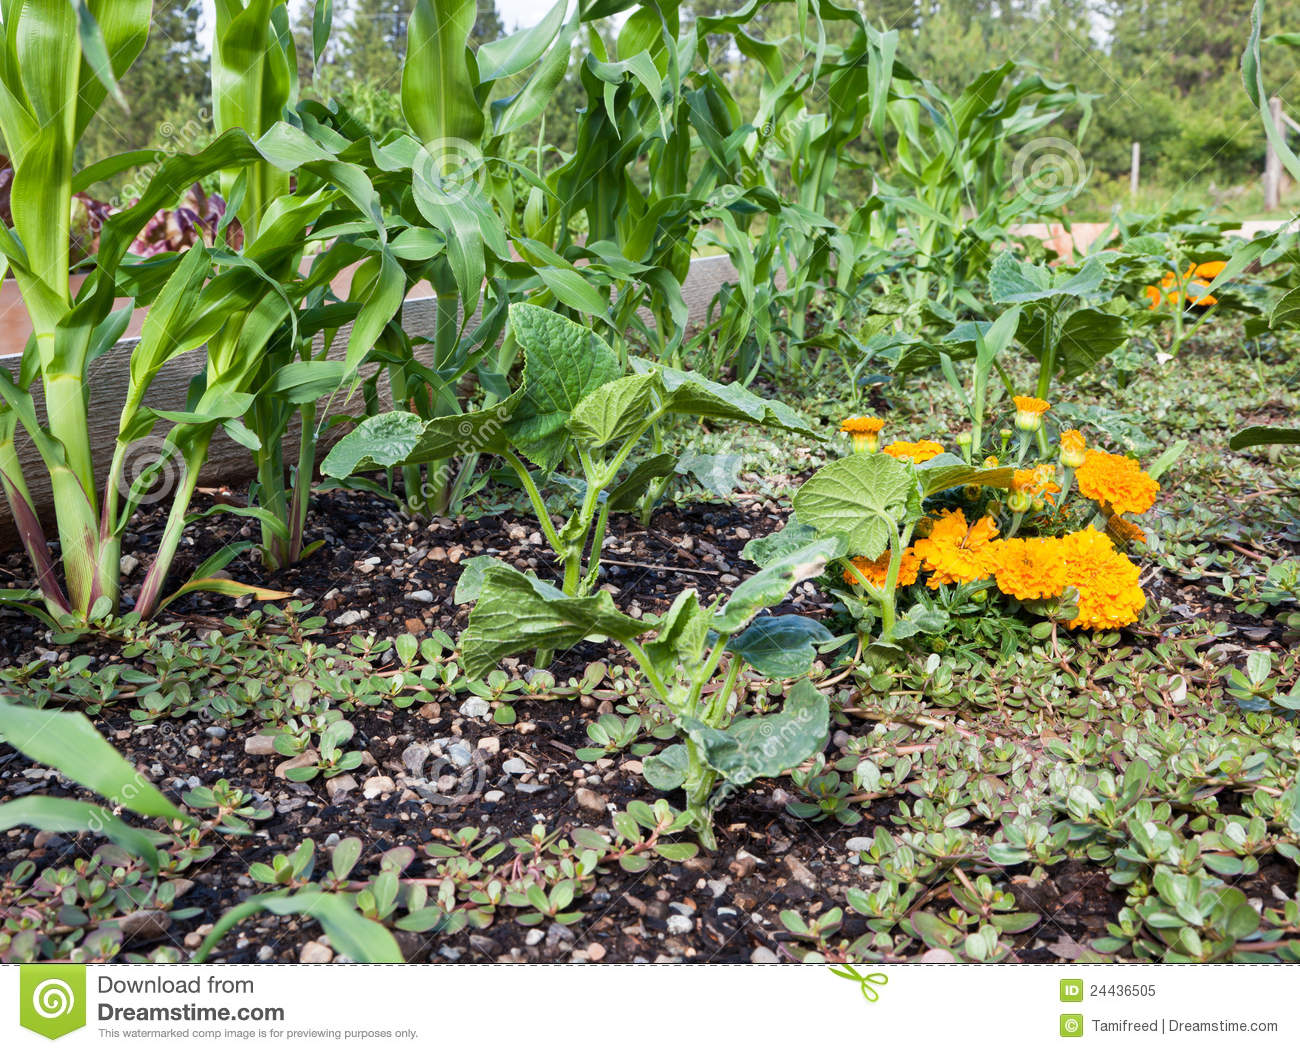 how to make an organic vegeie garden bed